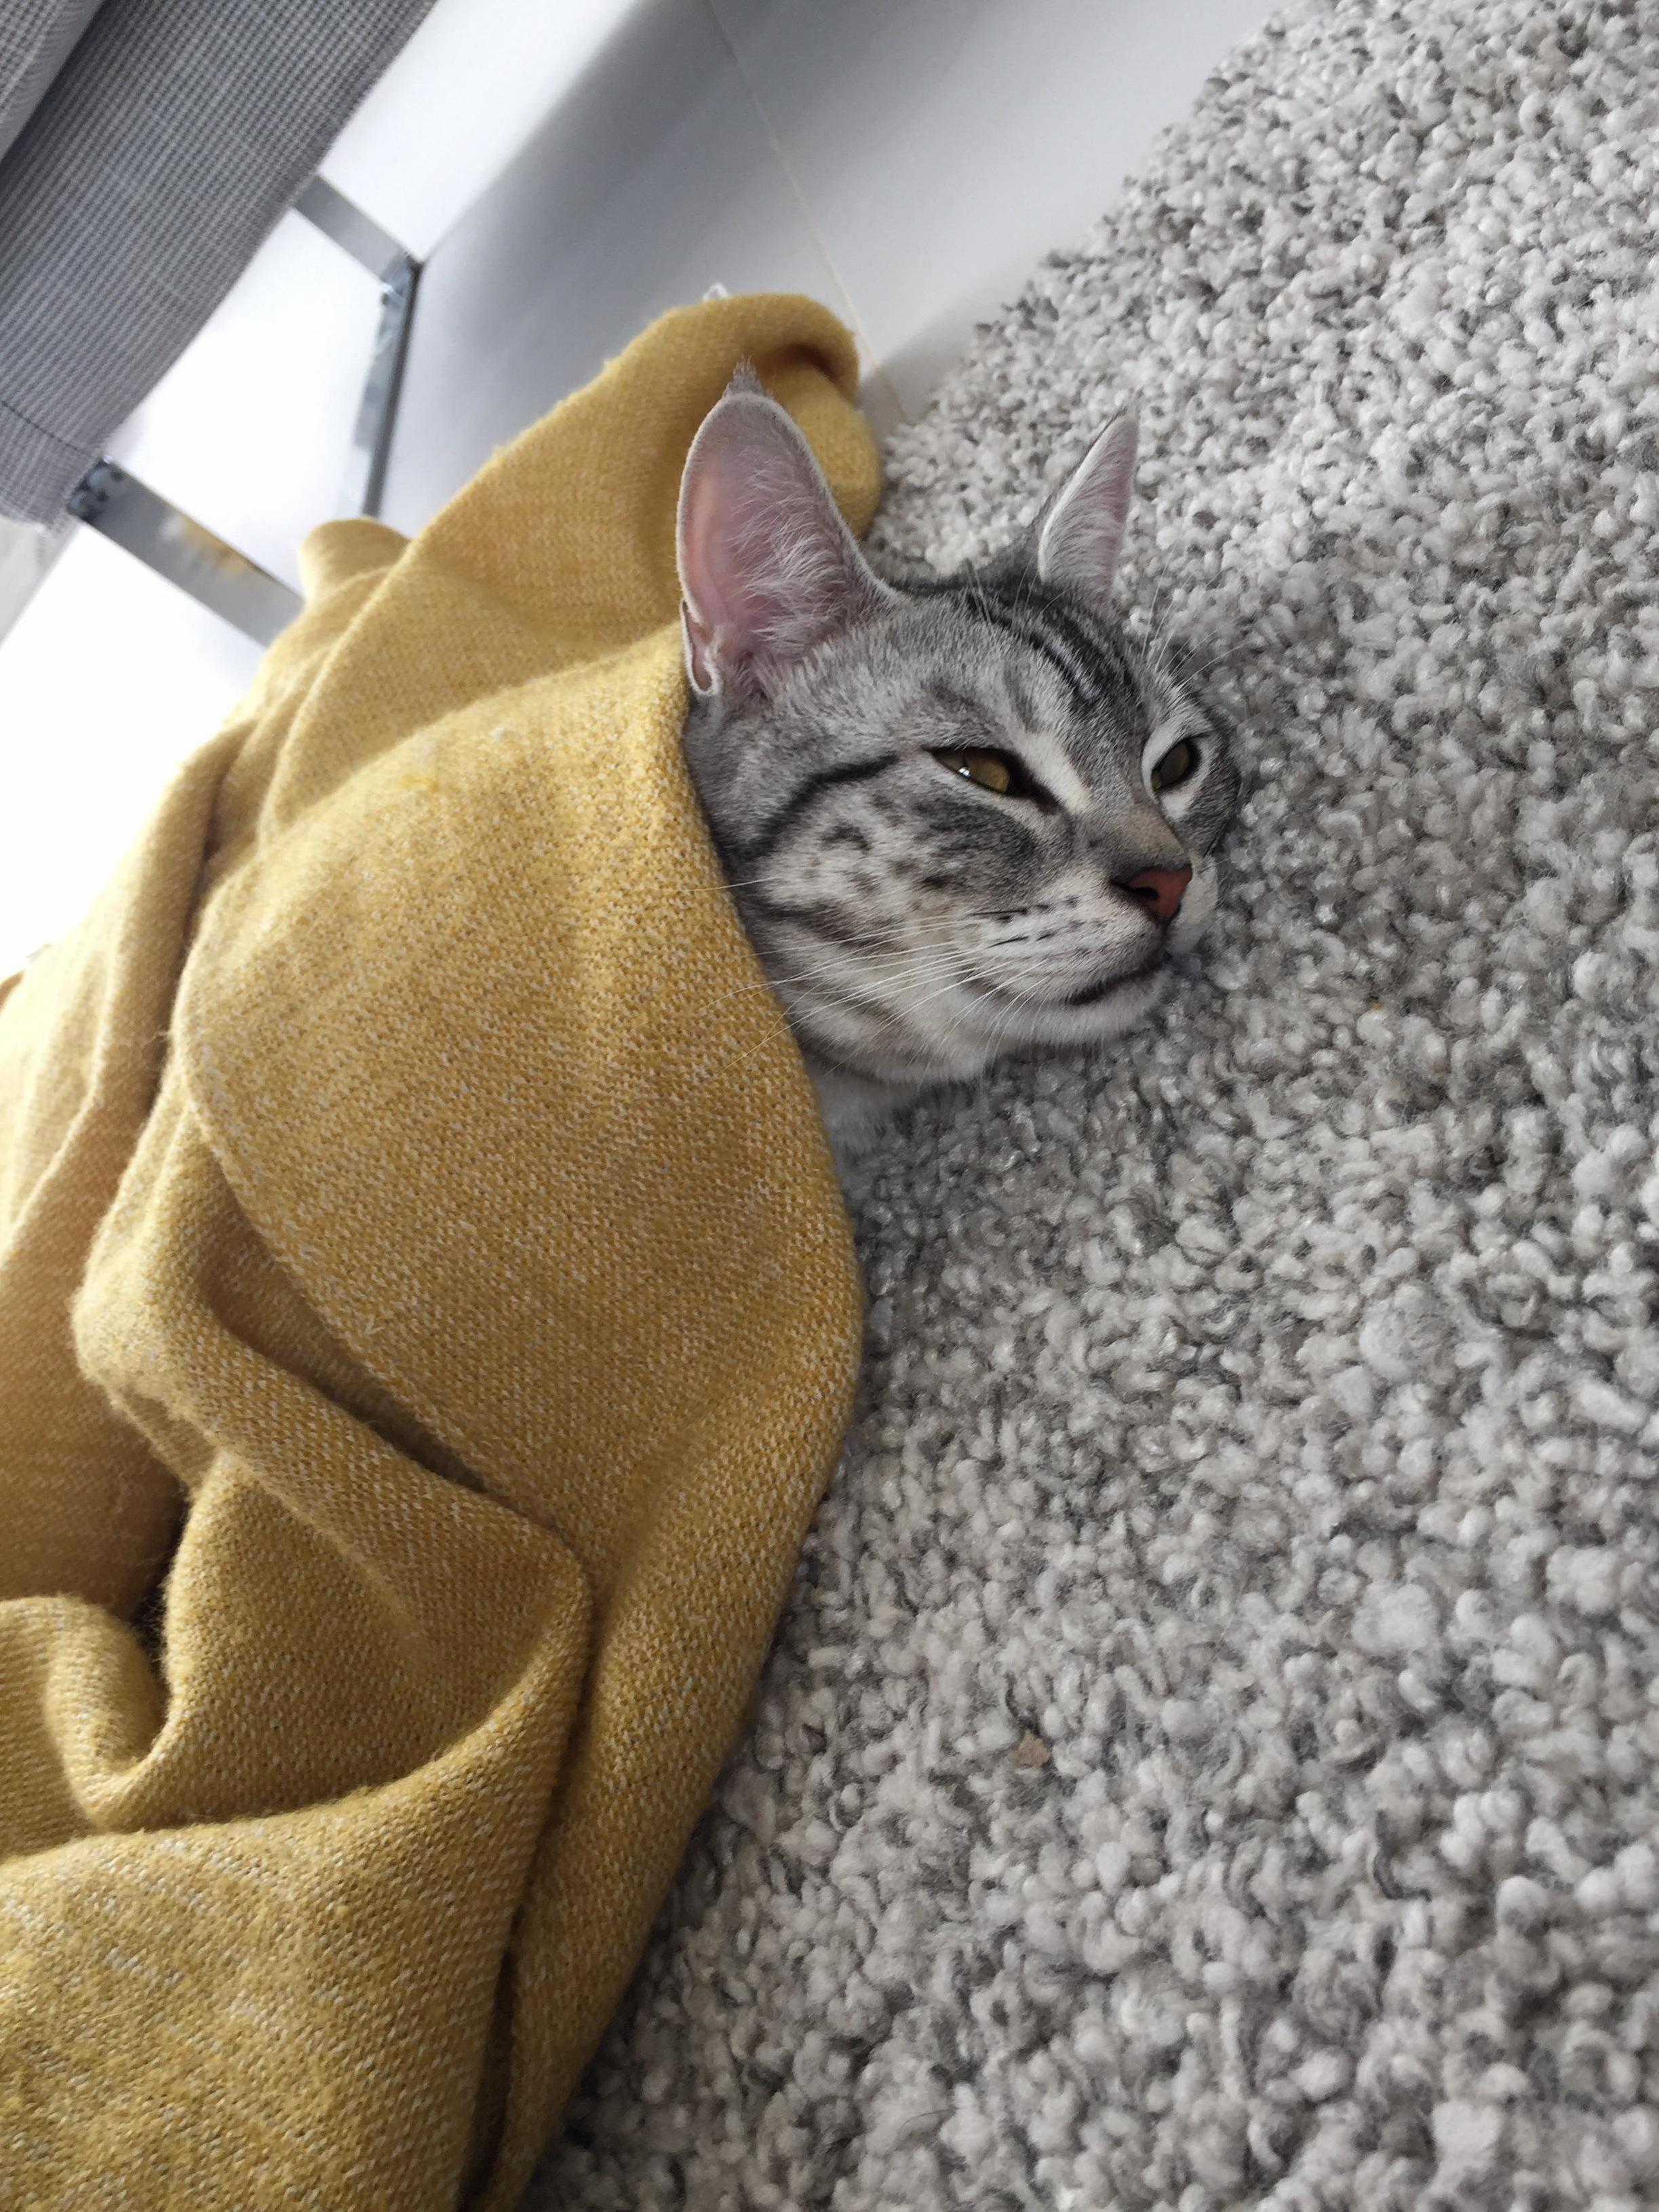 My poor baby is sick so hes cuddling up with his favourite blanket